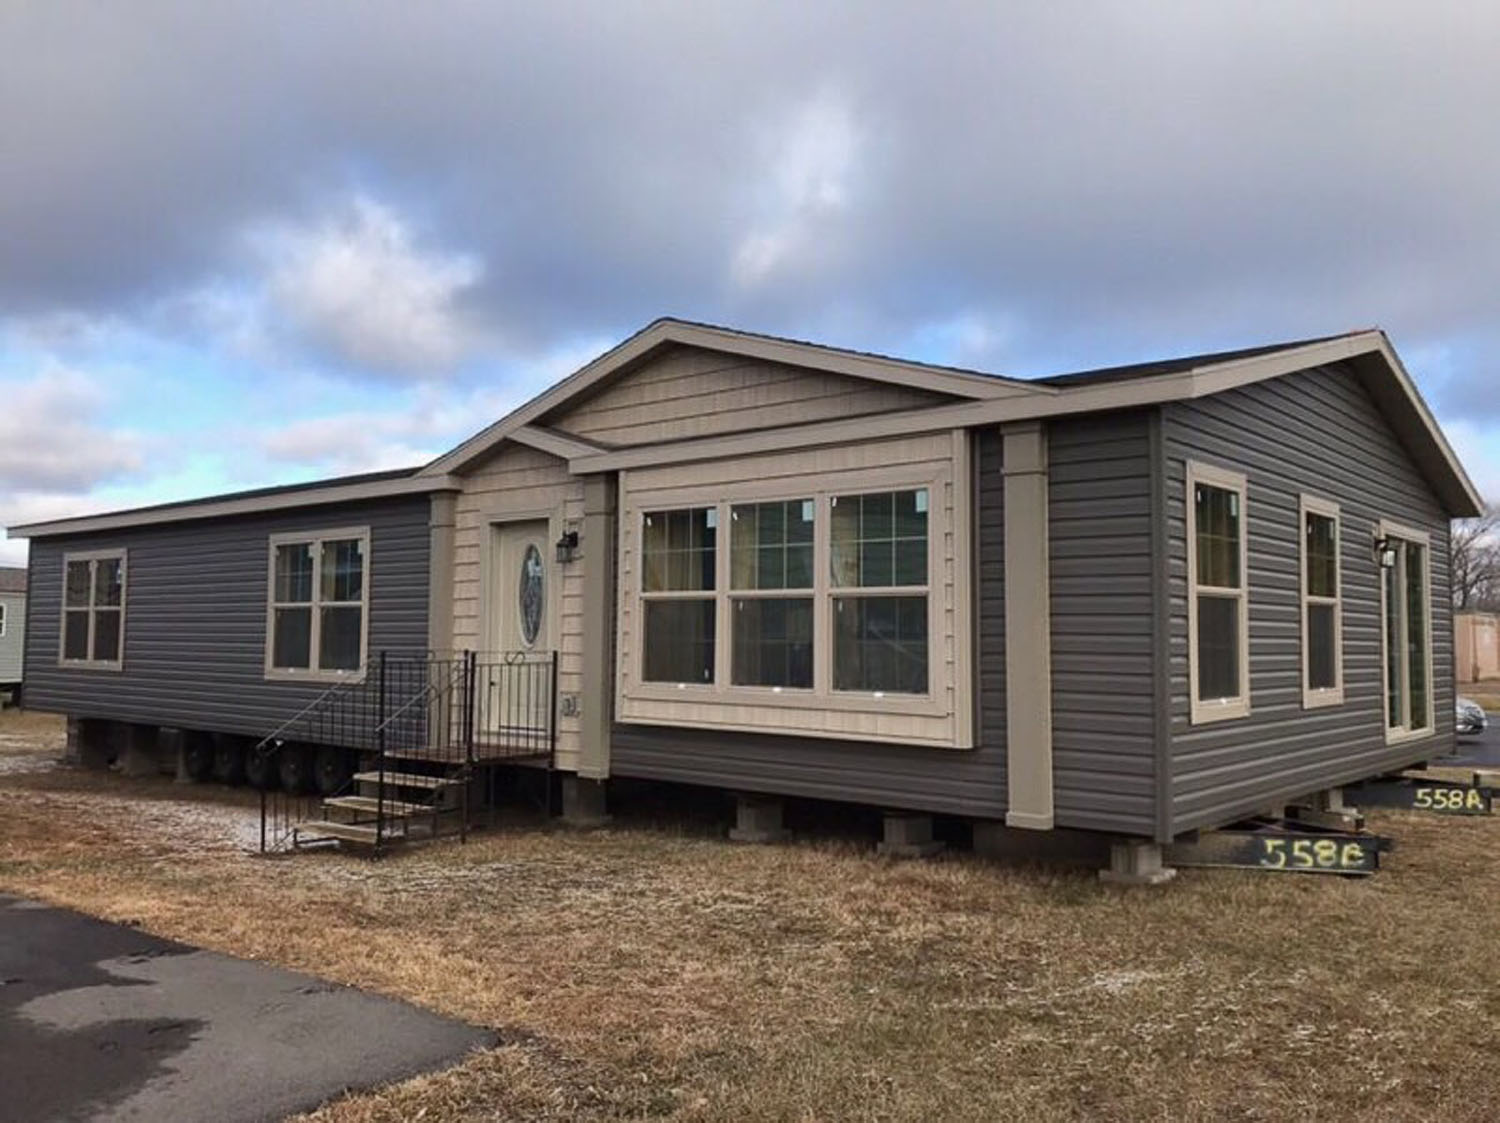 Hickory Manufactured Home Model